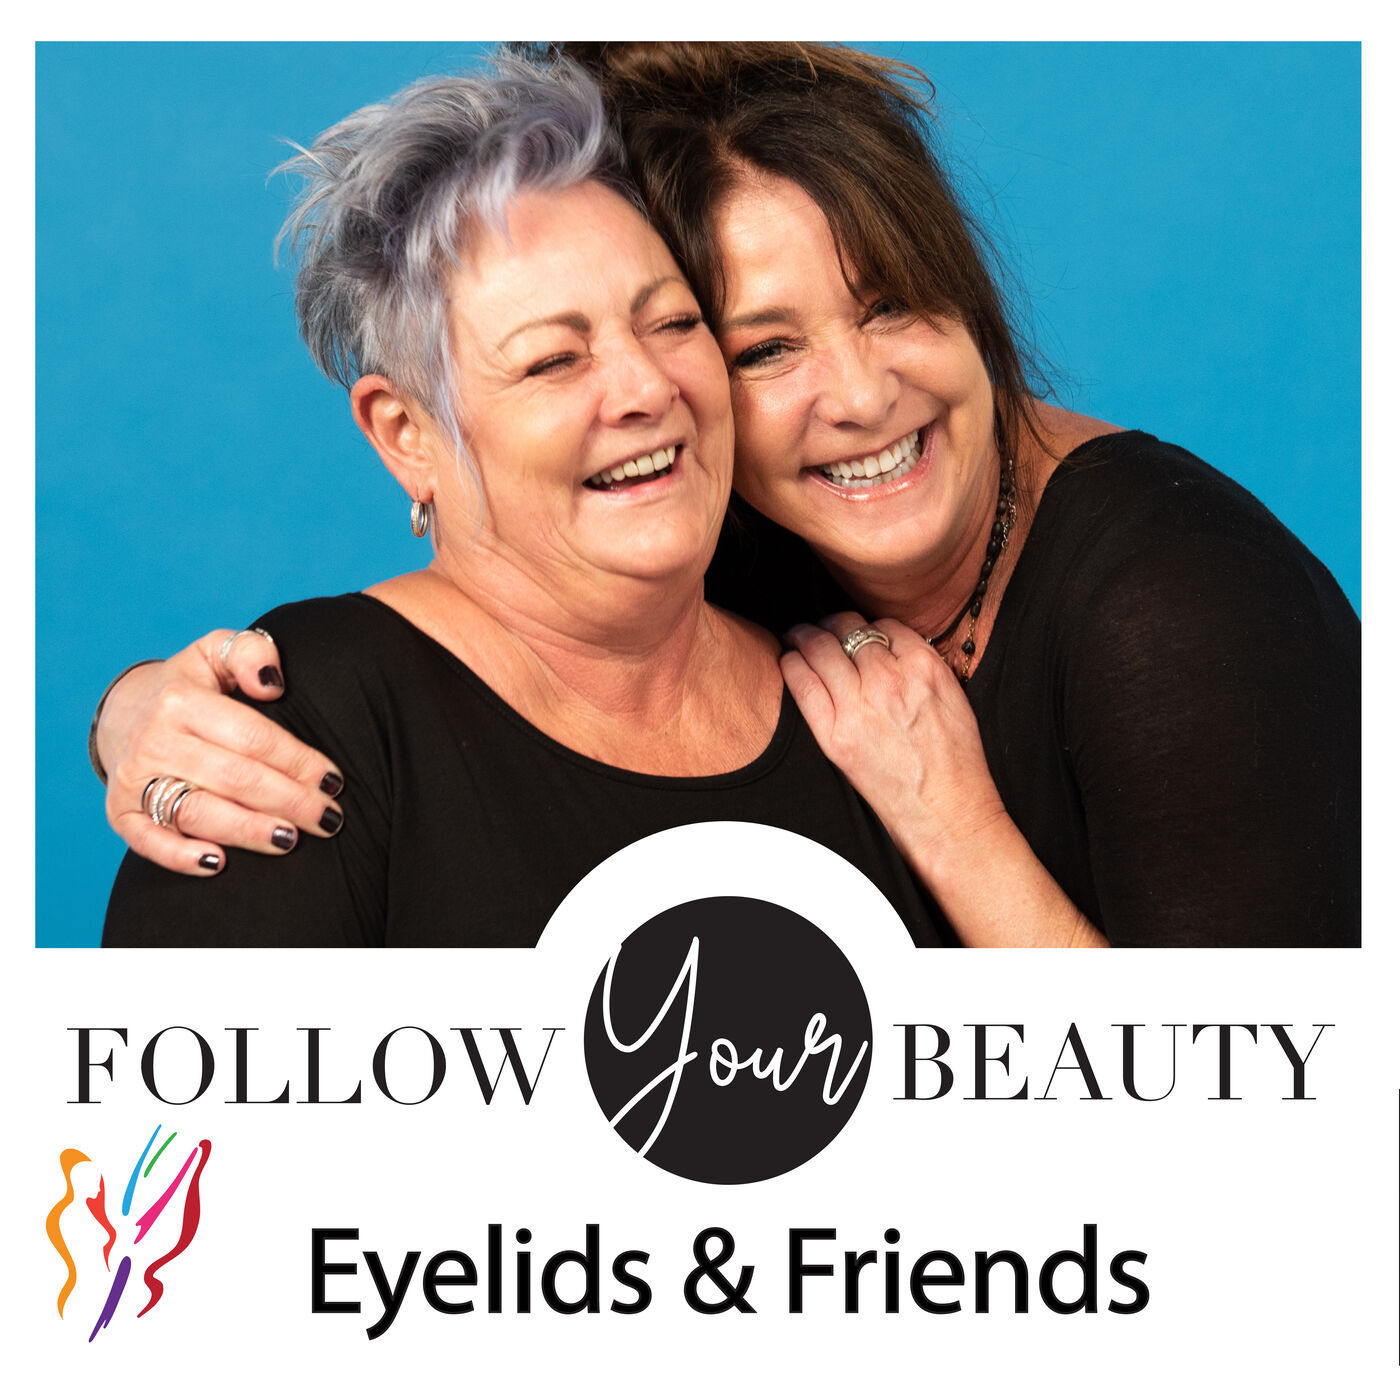 Open Your Eyes and Follow Your Beauty With Friends!